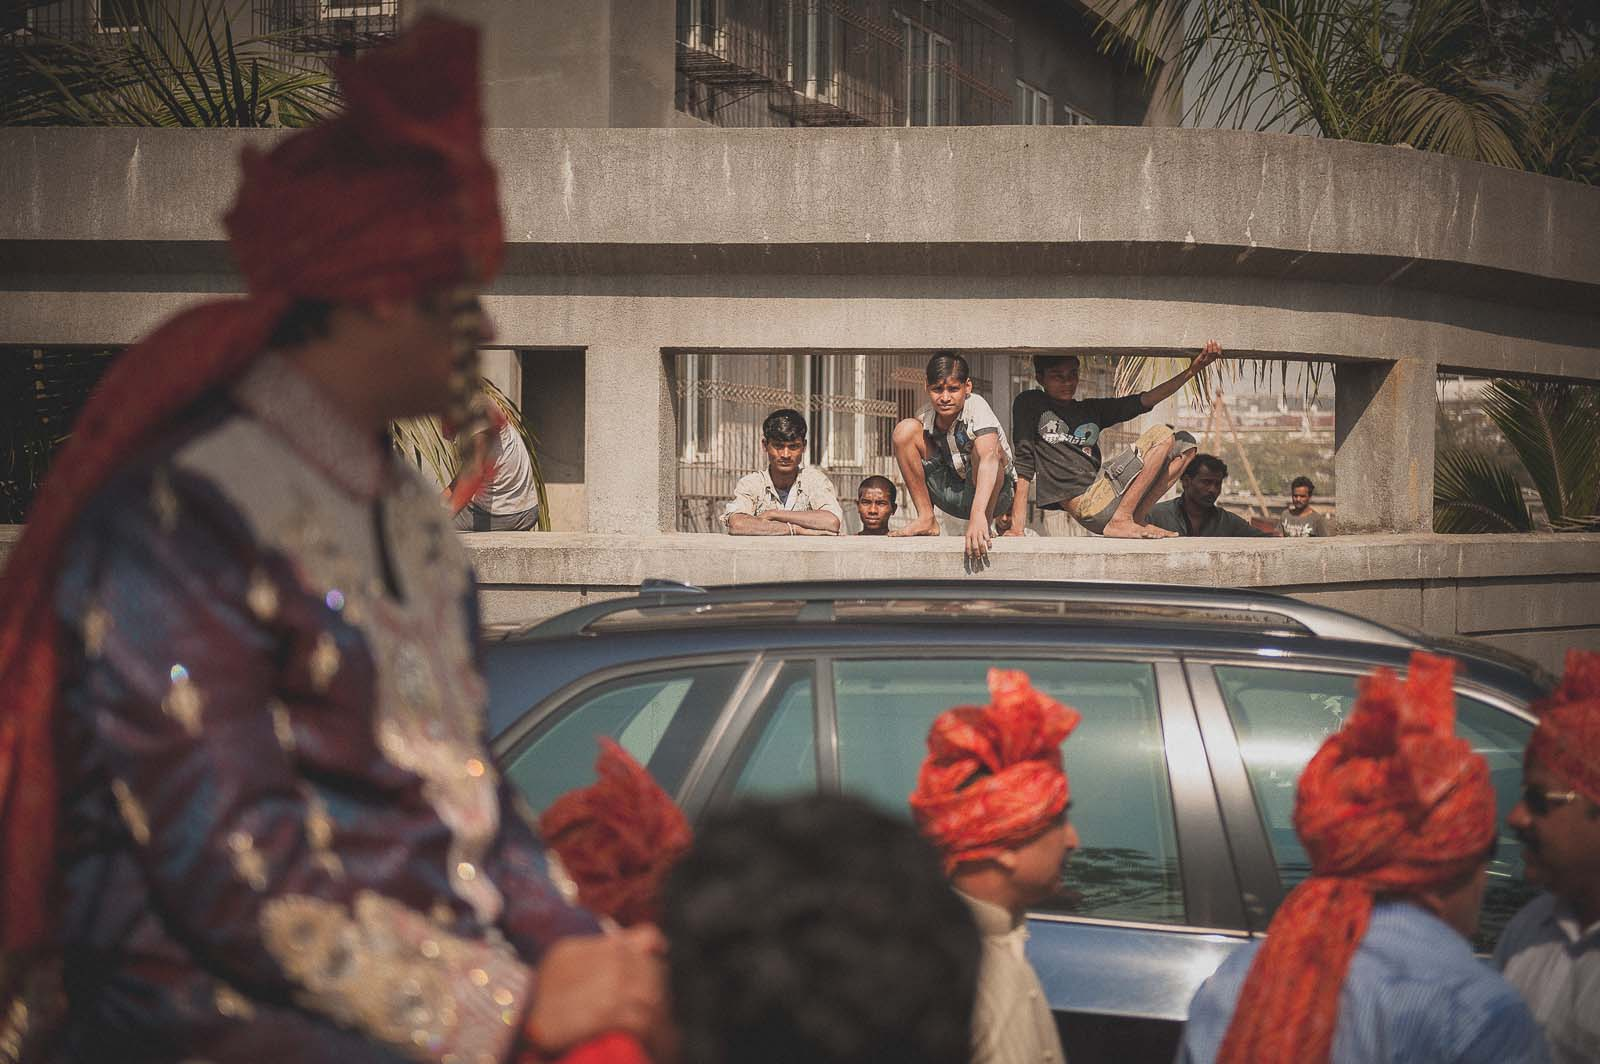 anoop-wedding-photographer-baraat-mumbai-street-spectacle